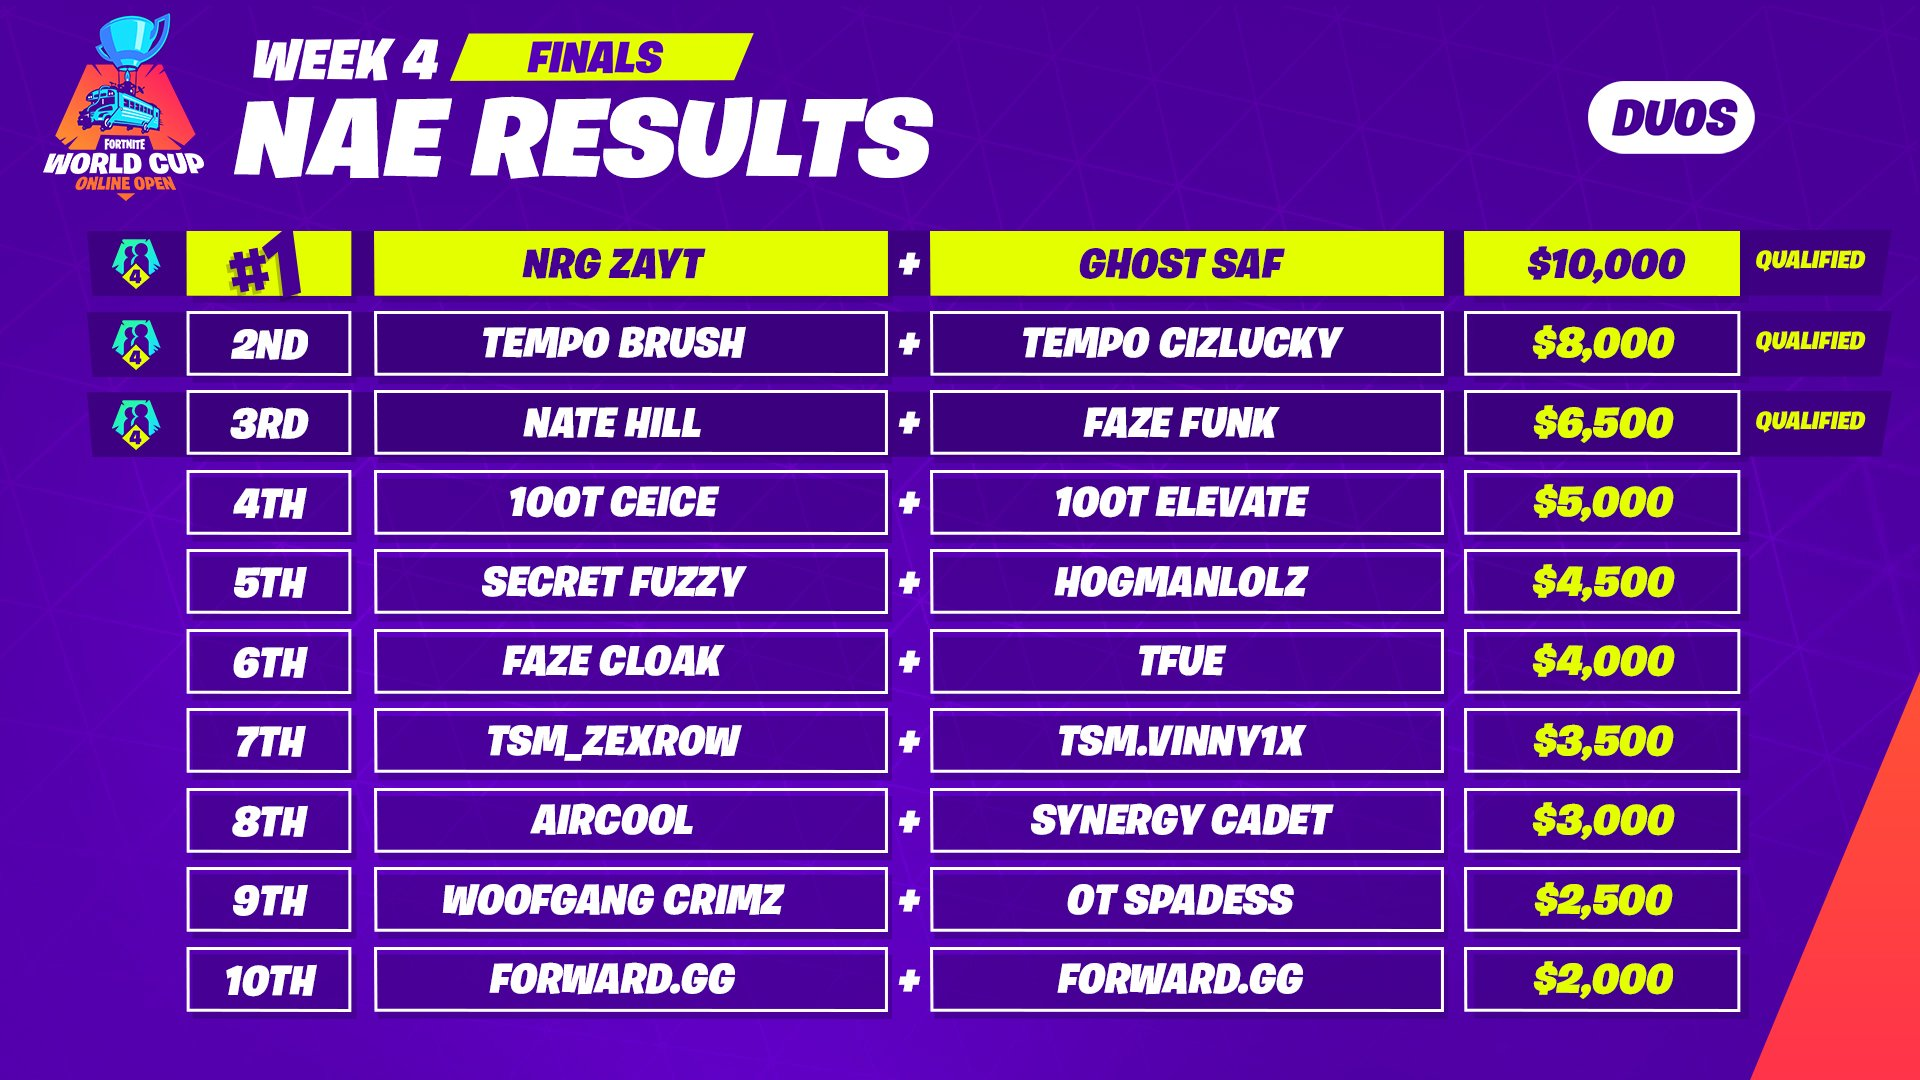 na west results - na west fortnite world cup duos